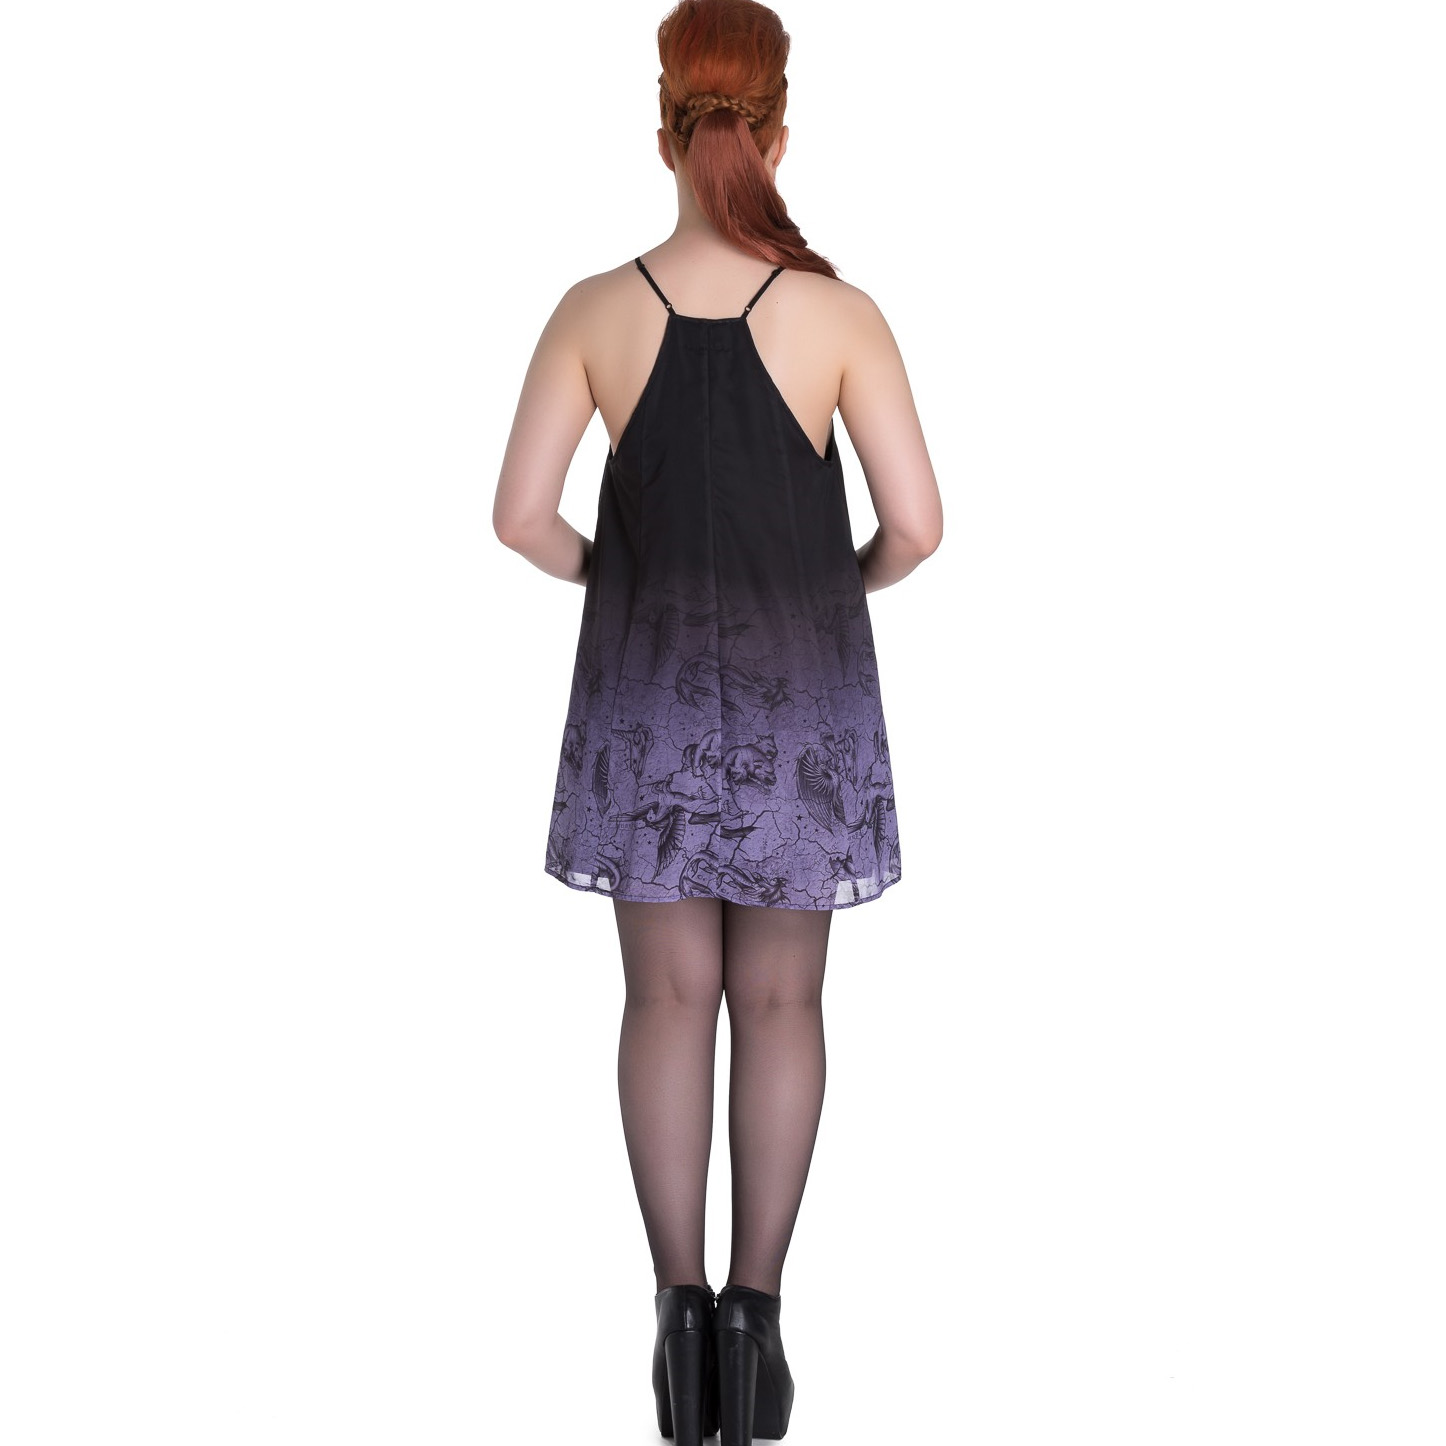 Hell-Bunny-Spin-Doctor-Goth-Lace-Up-Mini-Dress-EVADINE-Purple-Black-All-Sizes thumbnail 5